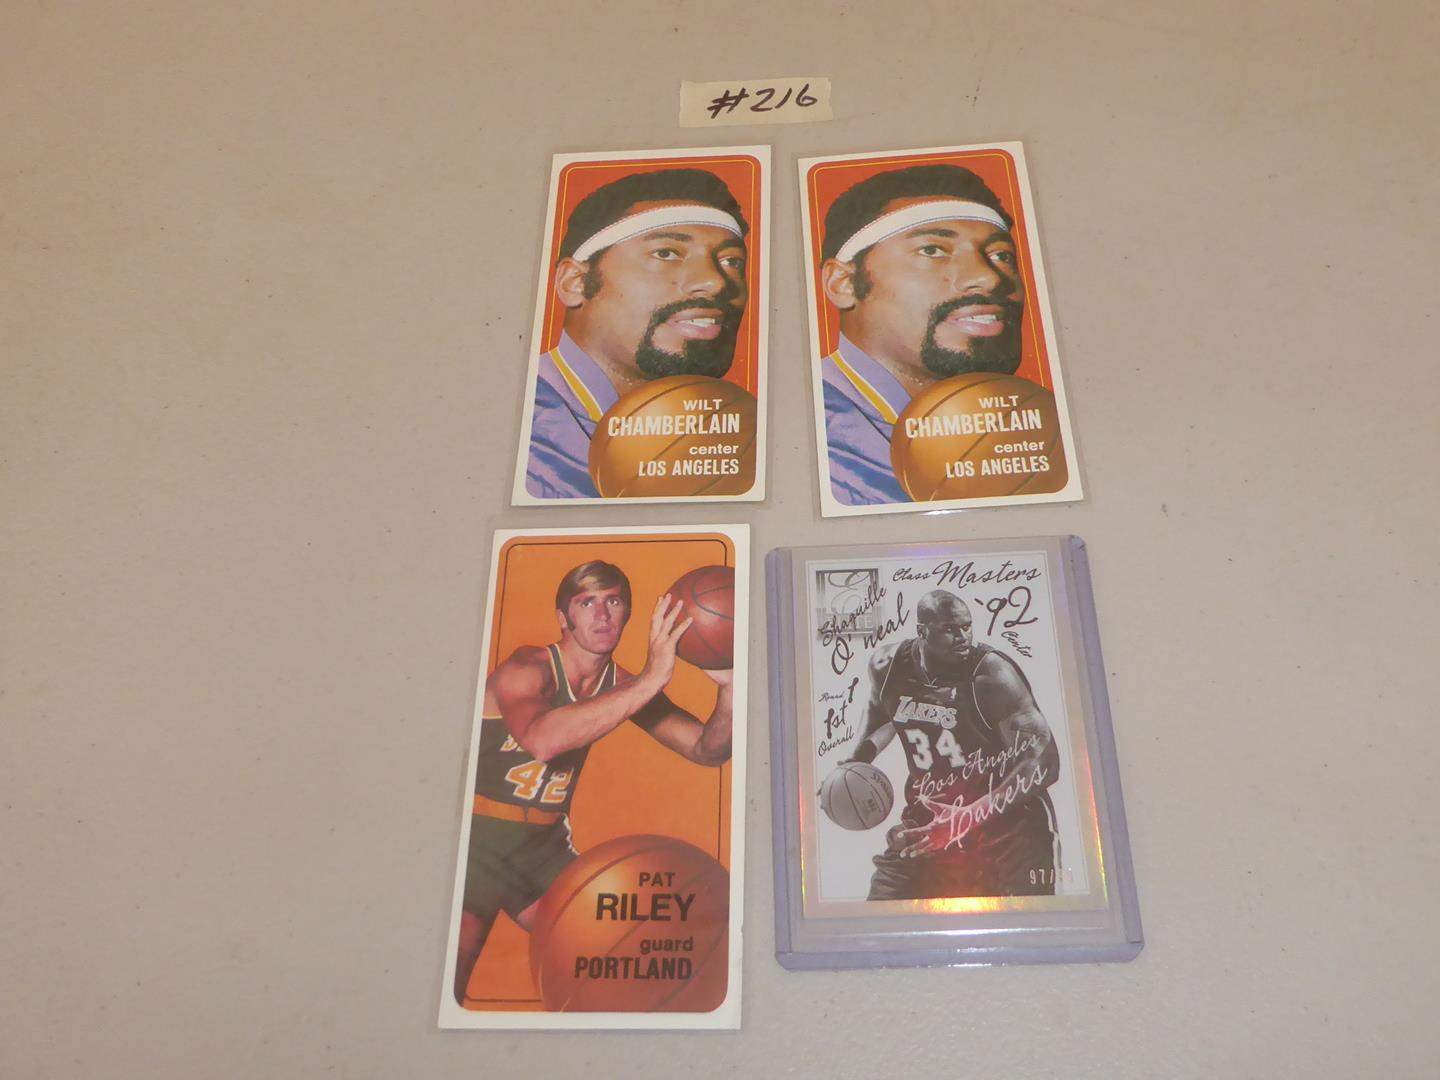 Lot # 216 - Two Vintage Wilt Chamberlain Basketball Cards, Pat Riley & Shaquille O' Neal (main image)